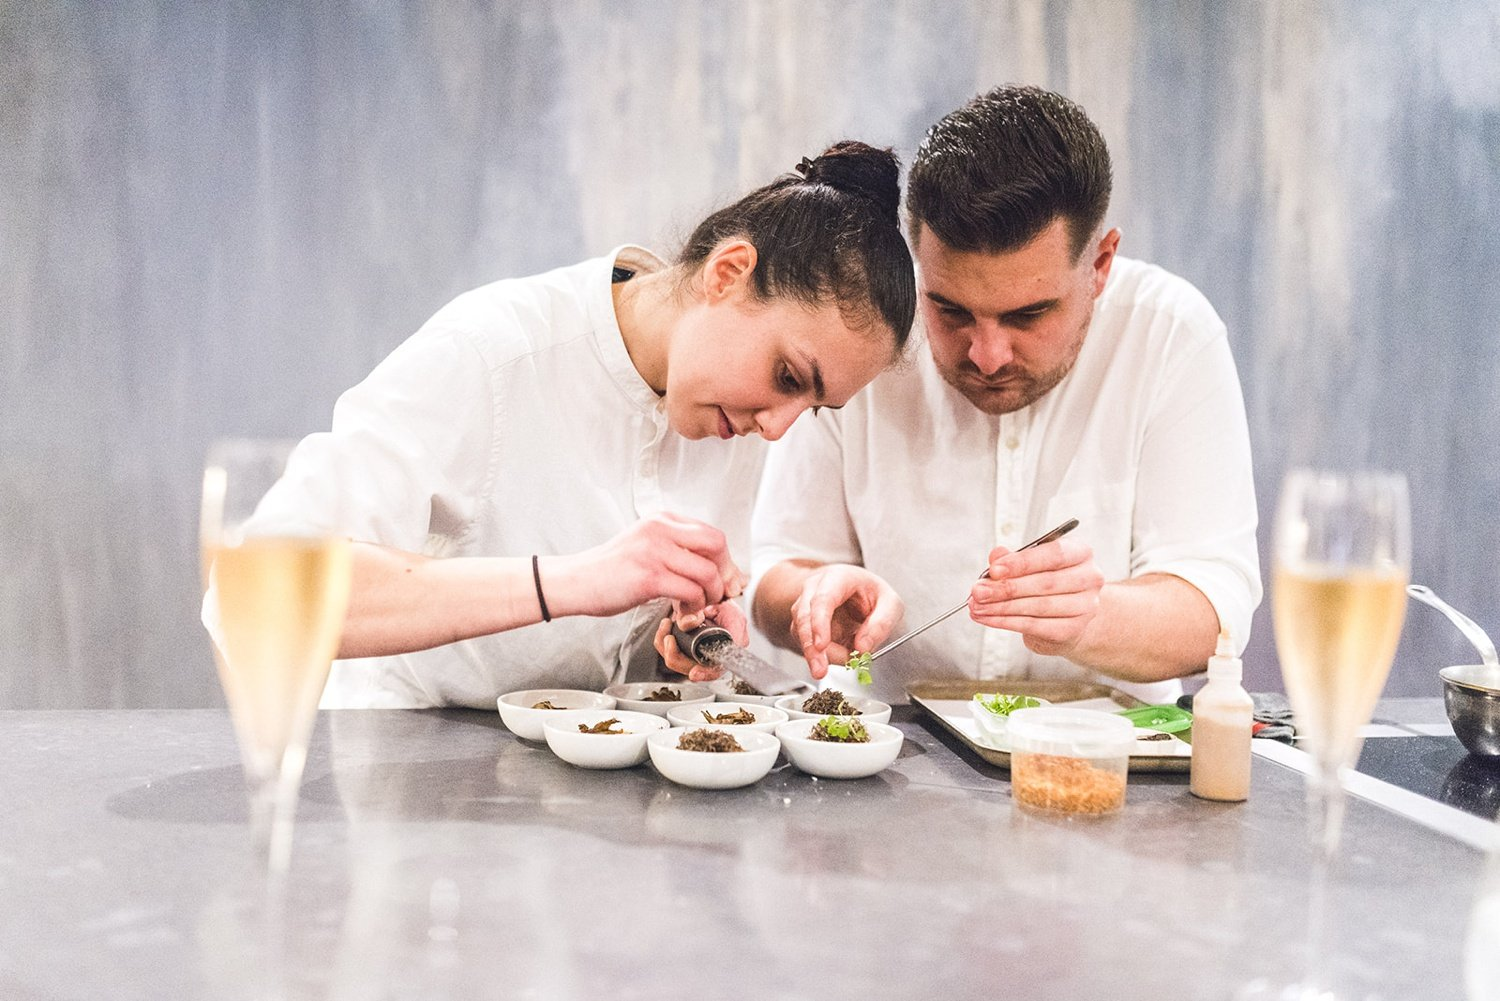 Chefs preparing food An Intimate Islington Town Hall and Aulis London wedding